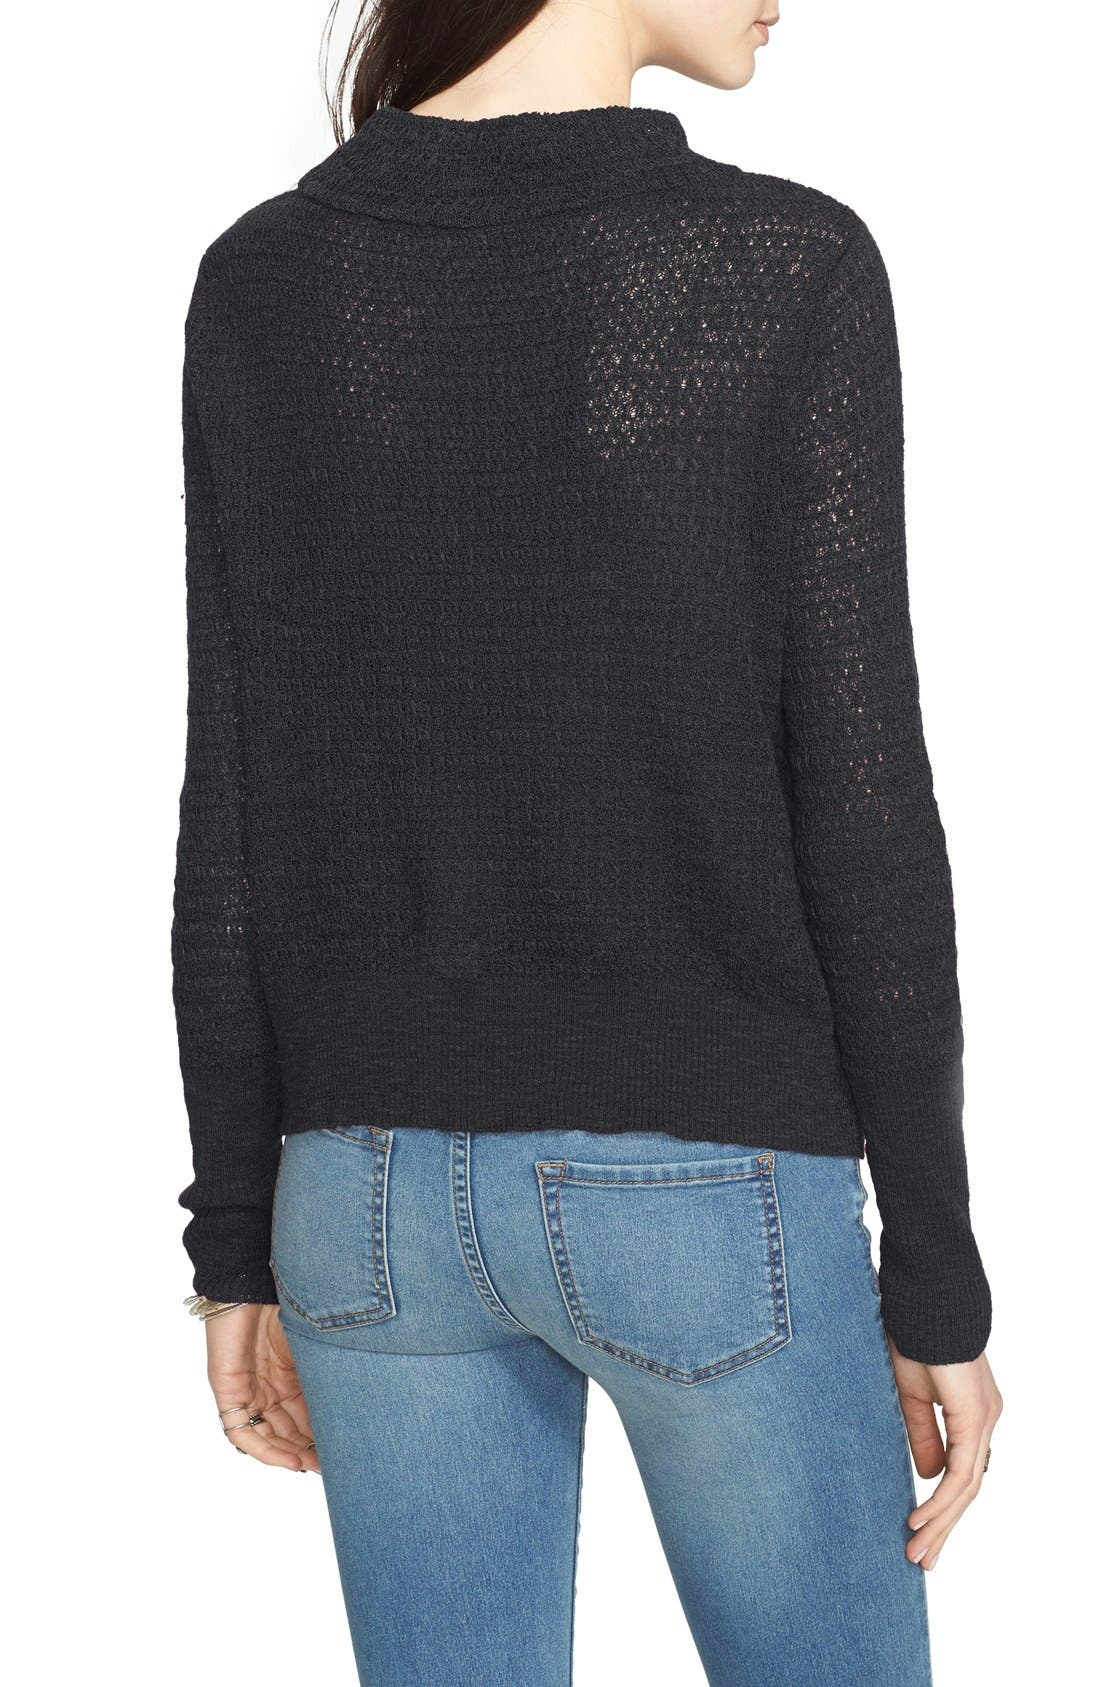 FREE PEOPLE, Crossover Sweater, Alternate thumbnail 5, color, 001